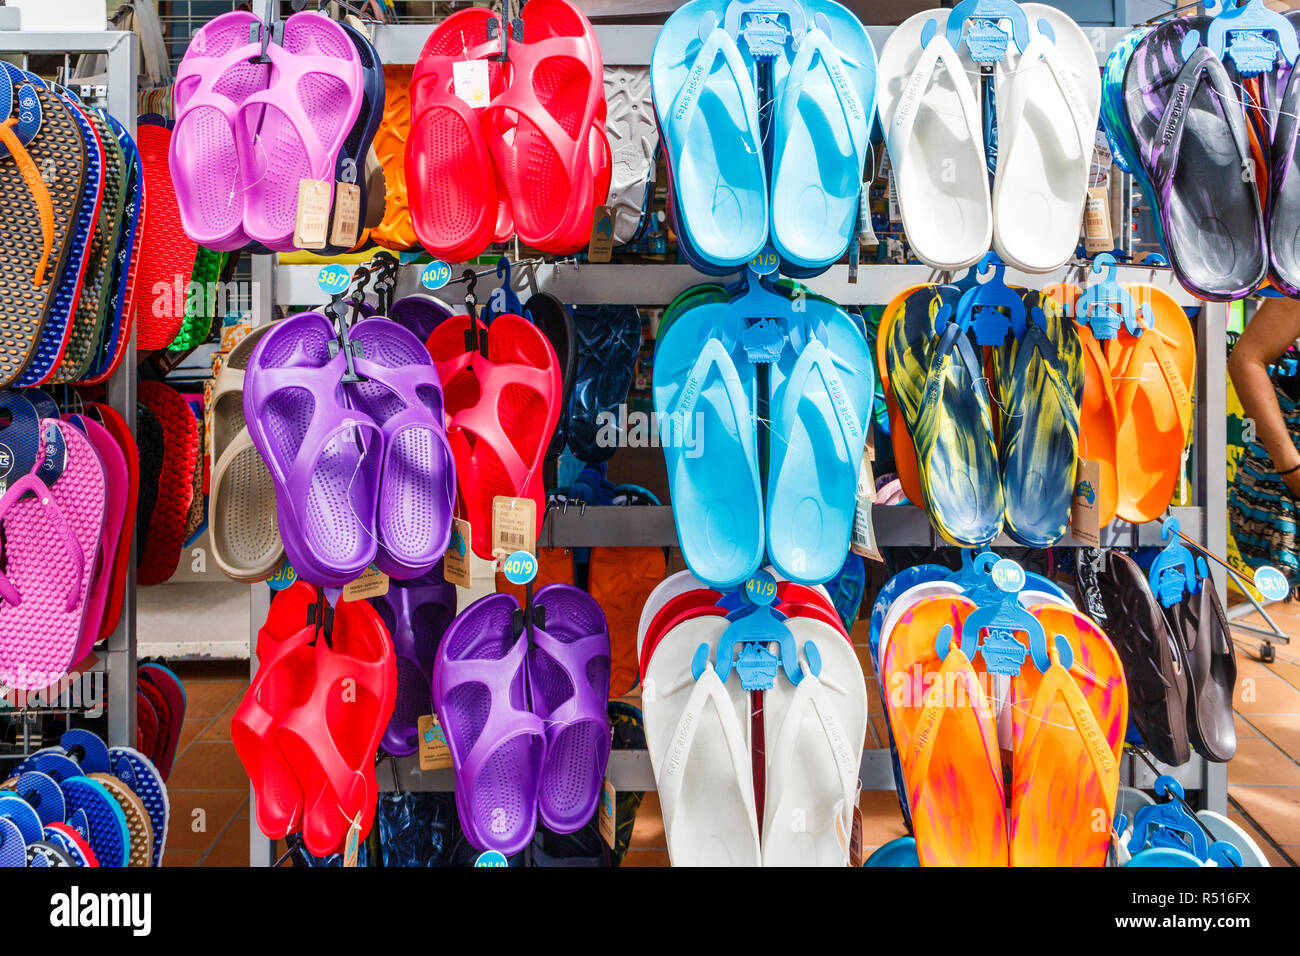 7a2d8d607026 Flip flops hung up for sale outside shop · kevin hellon   Alamy Stock Photo